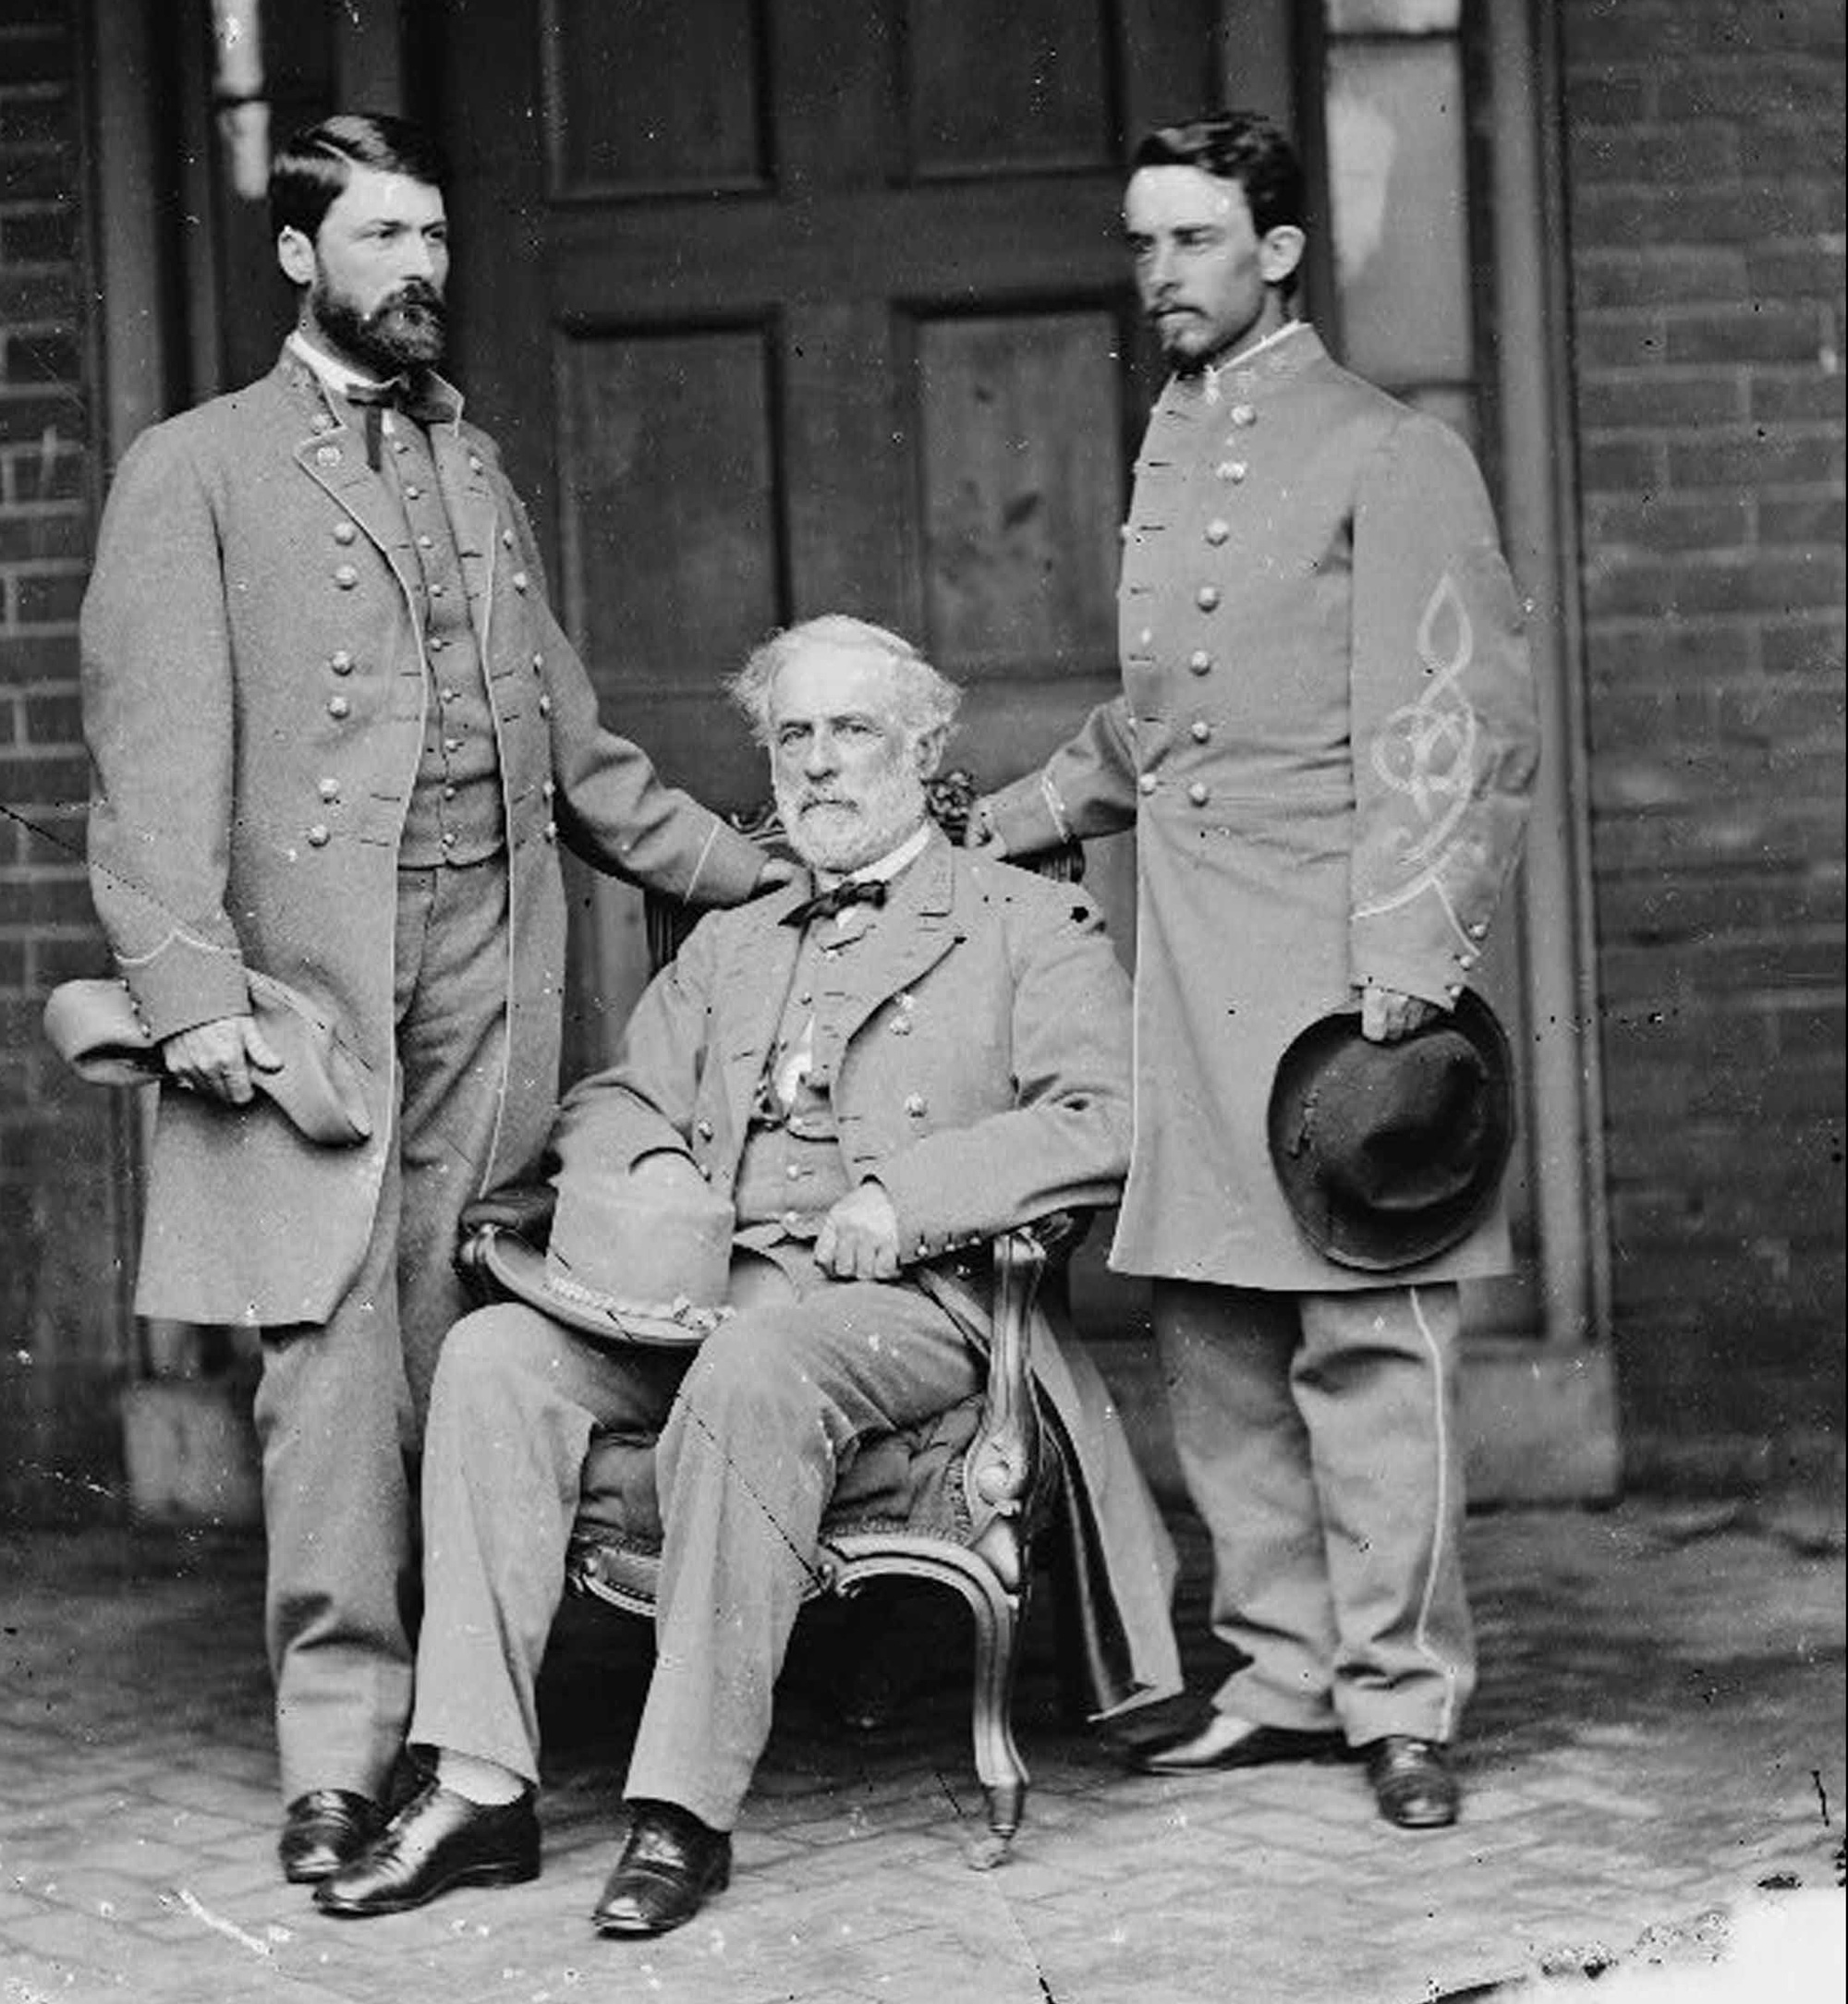 37 Robert E Lee with young confederate officers